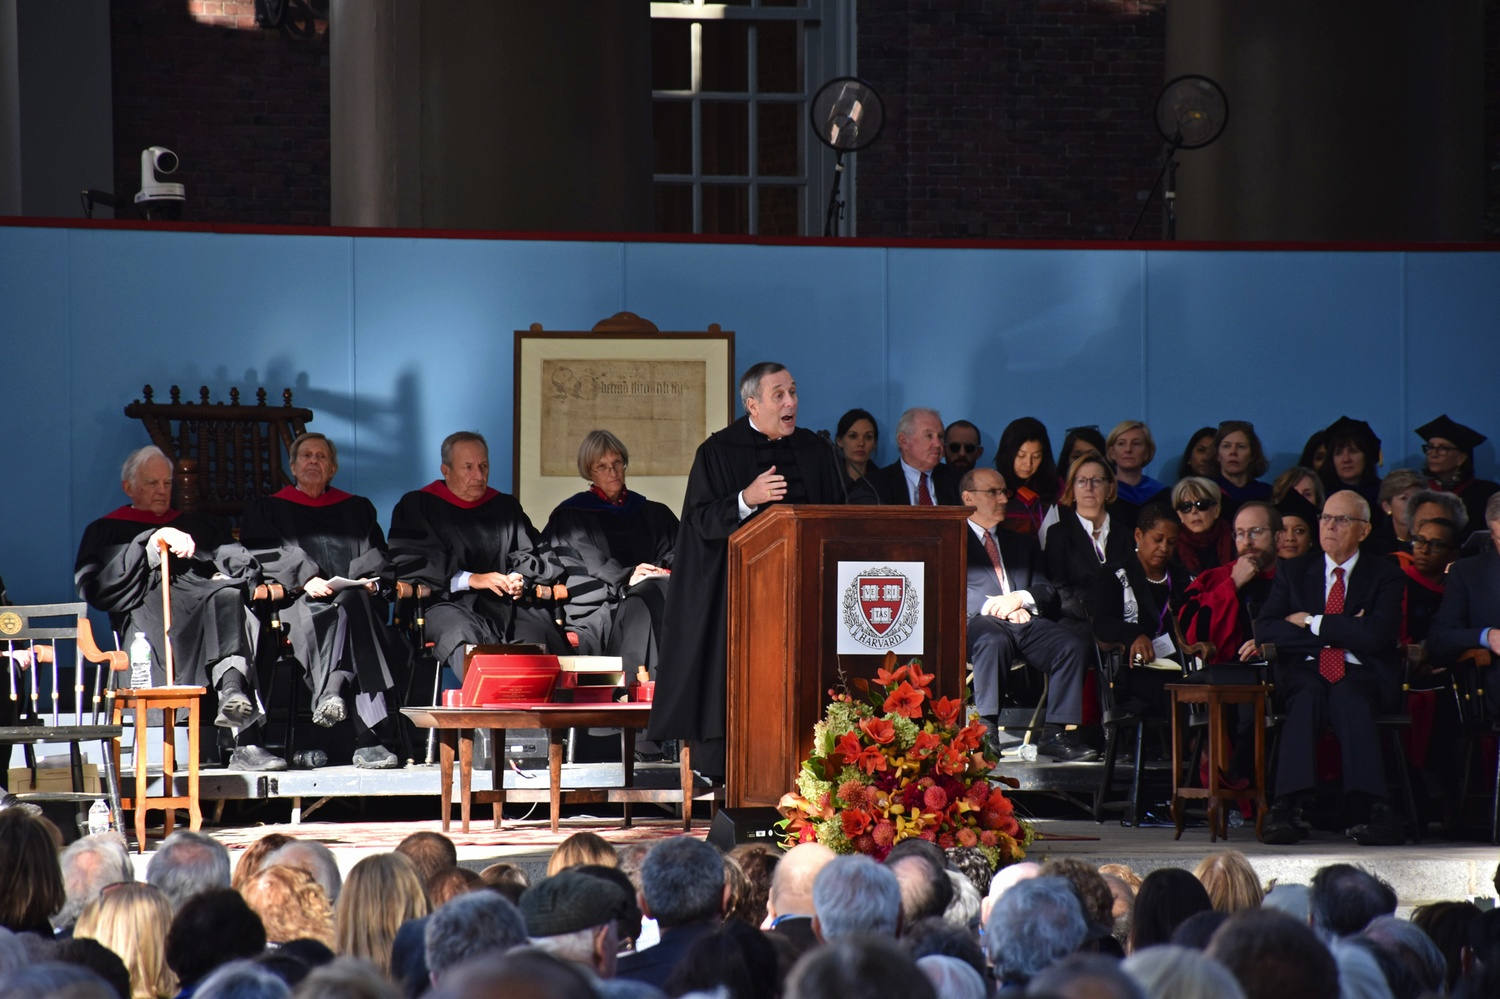 Harvard President Lawrence S. Bacow, pictured here at his inauguration in 2018, said in an interview Friday that the University will not remove the Sackler name from campus buildings.